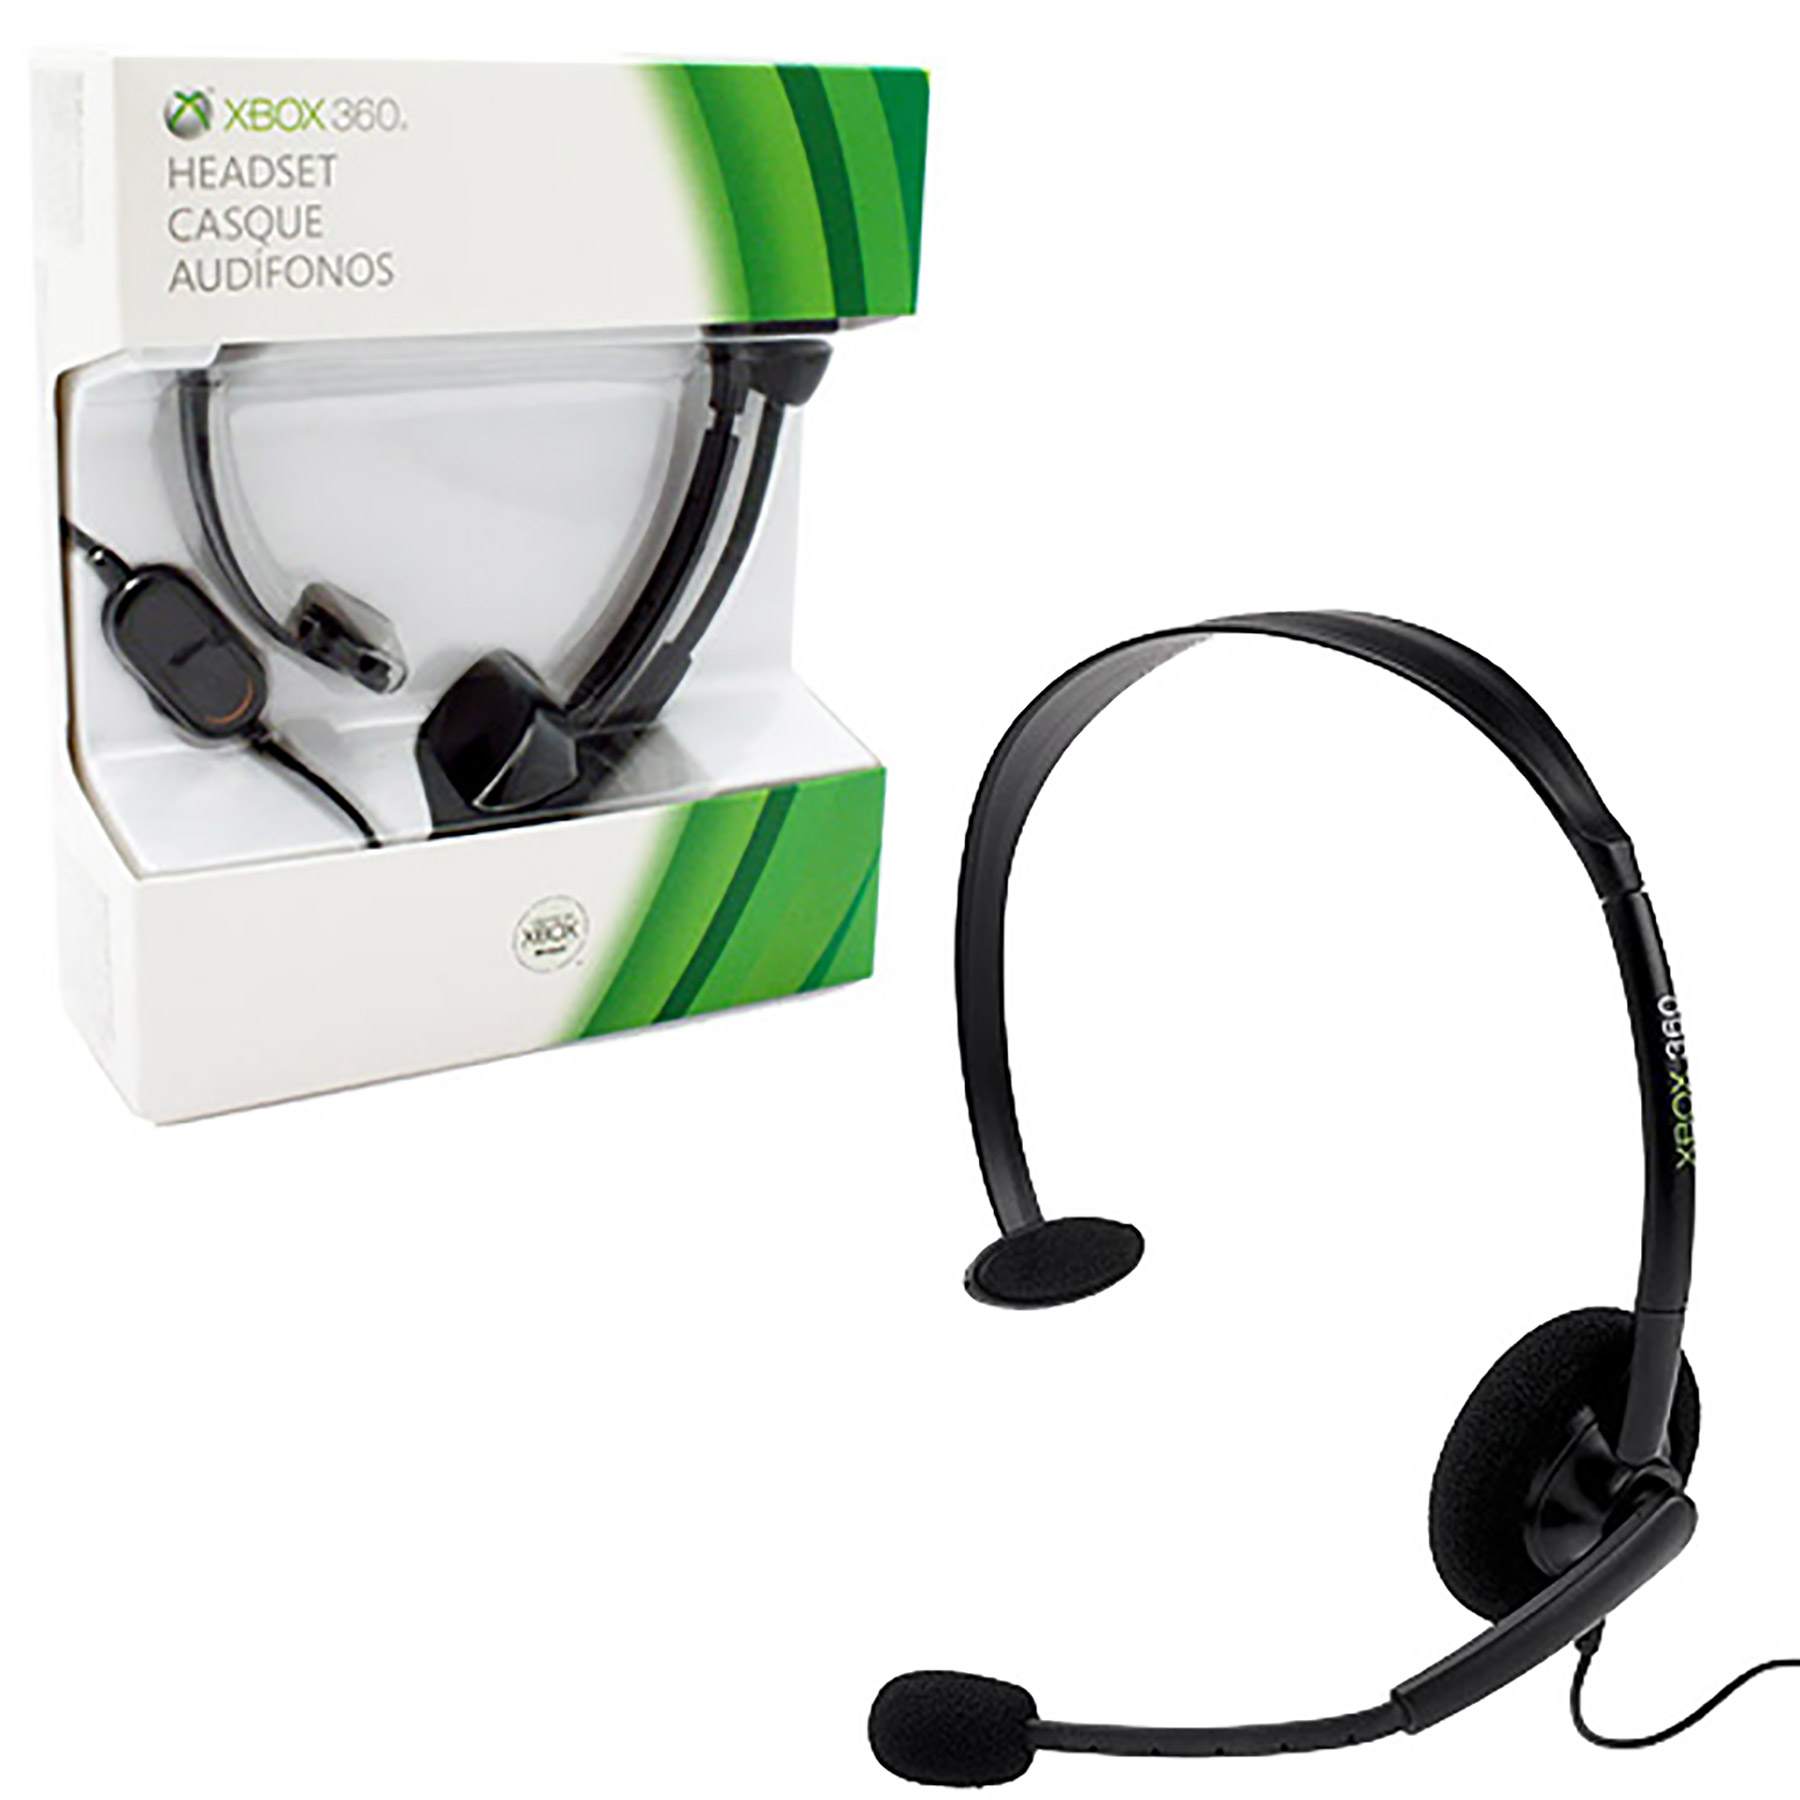 hight resolution of xbox 360 headset wired black new microsoft xbox 360 headset wiring diagram 21